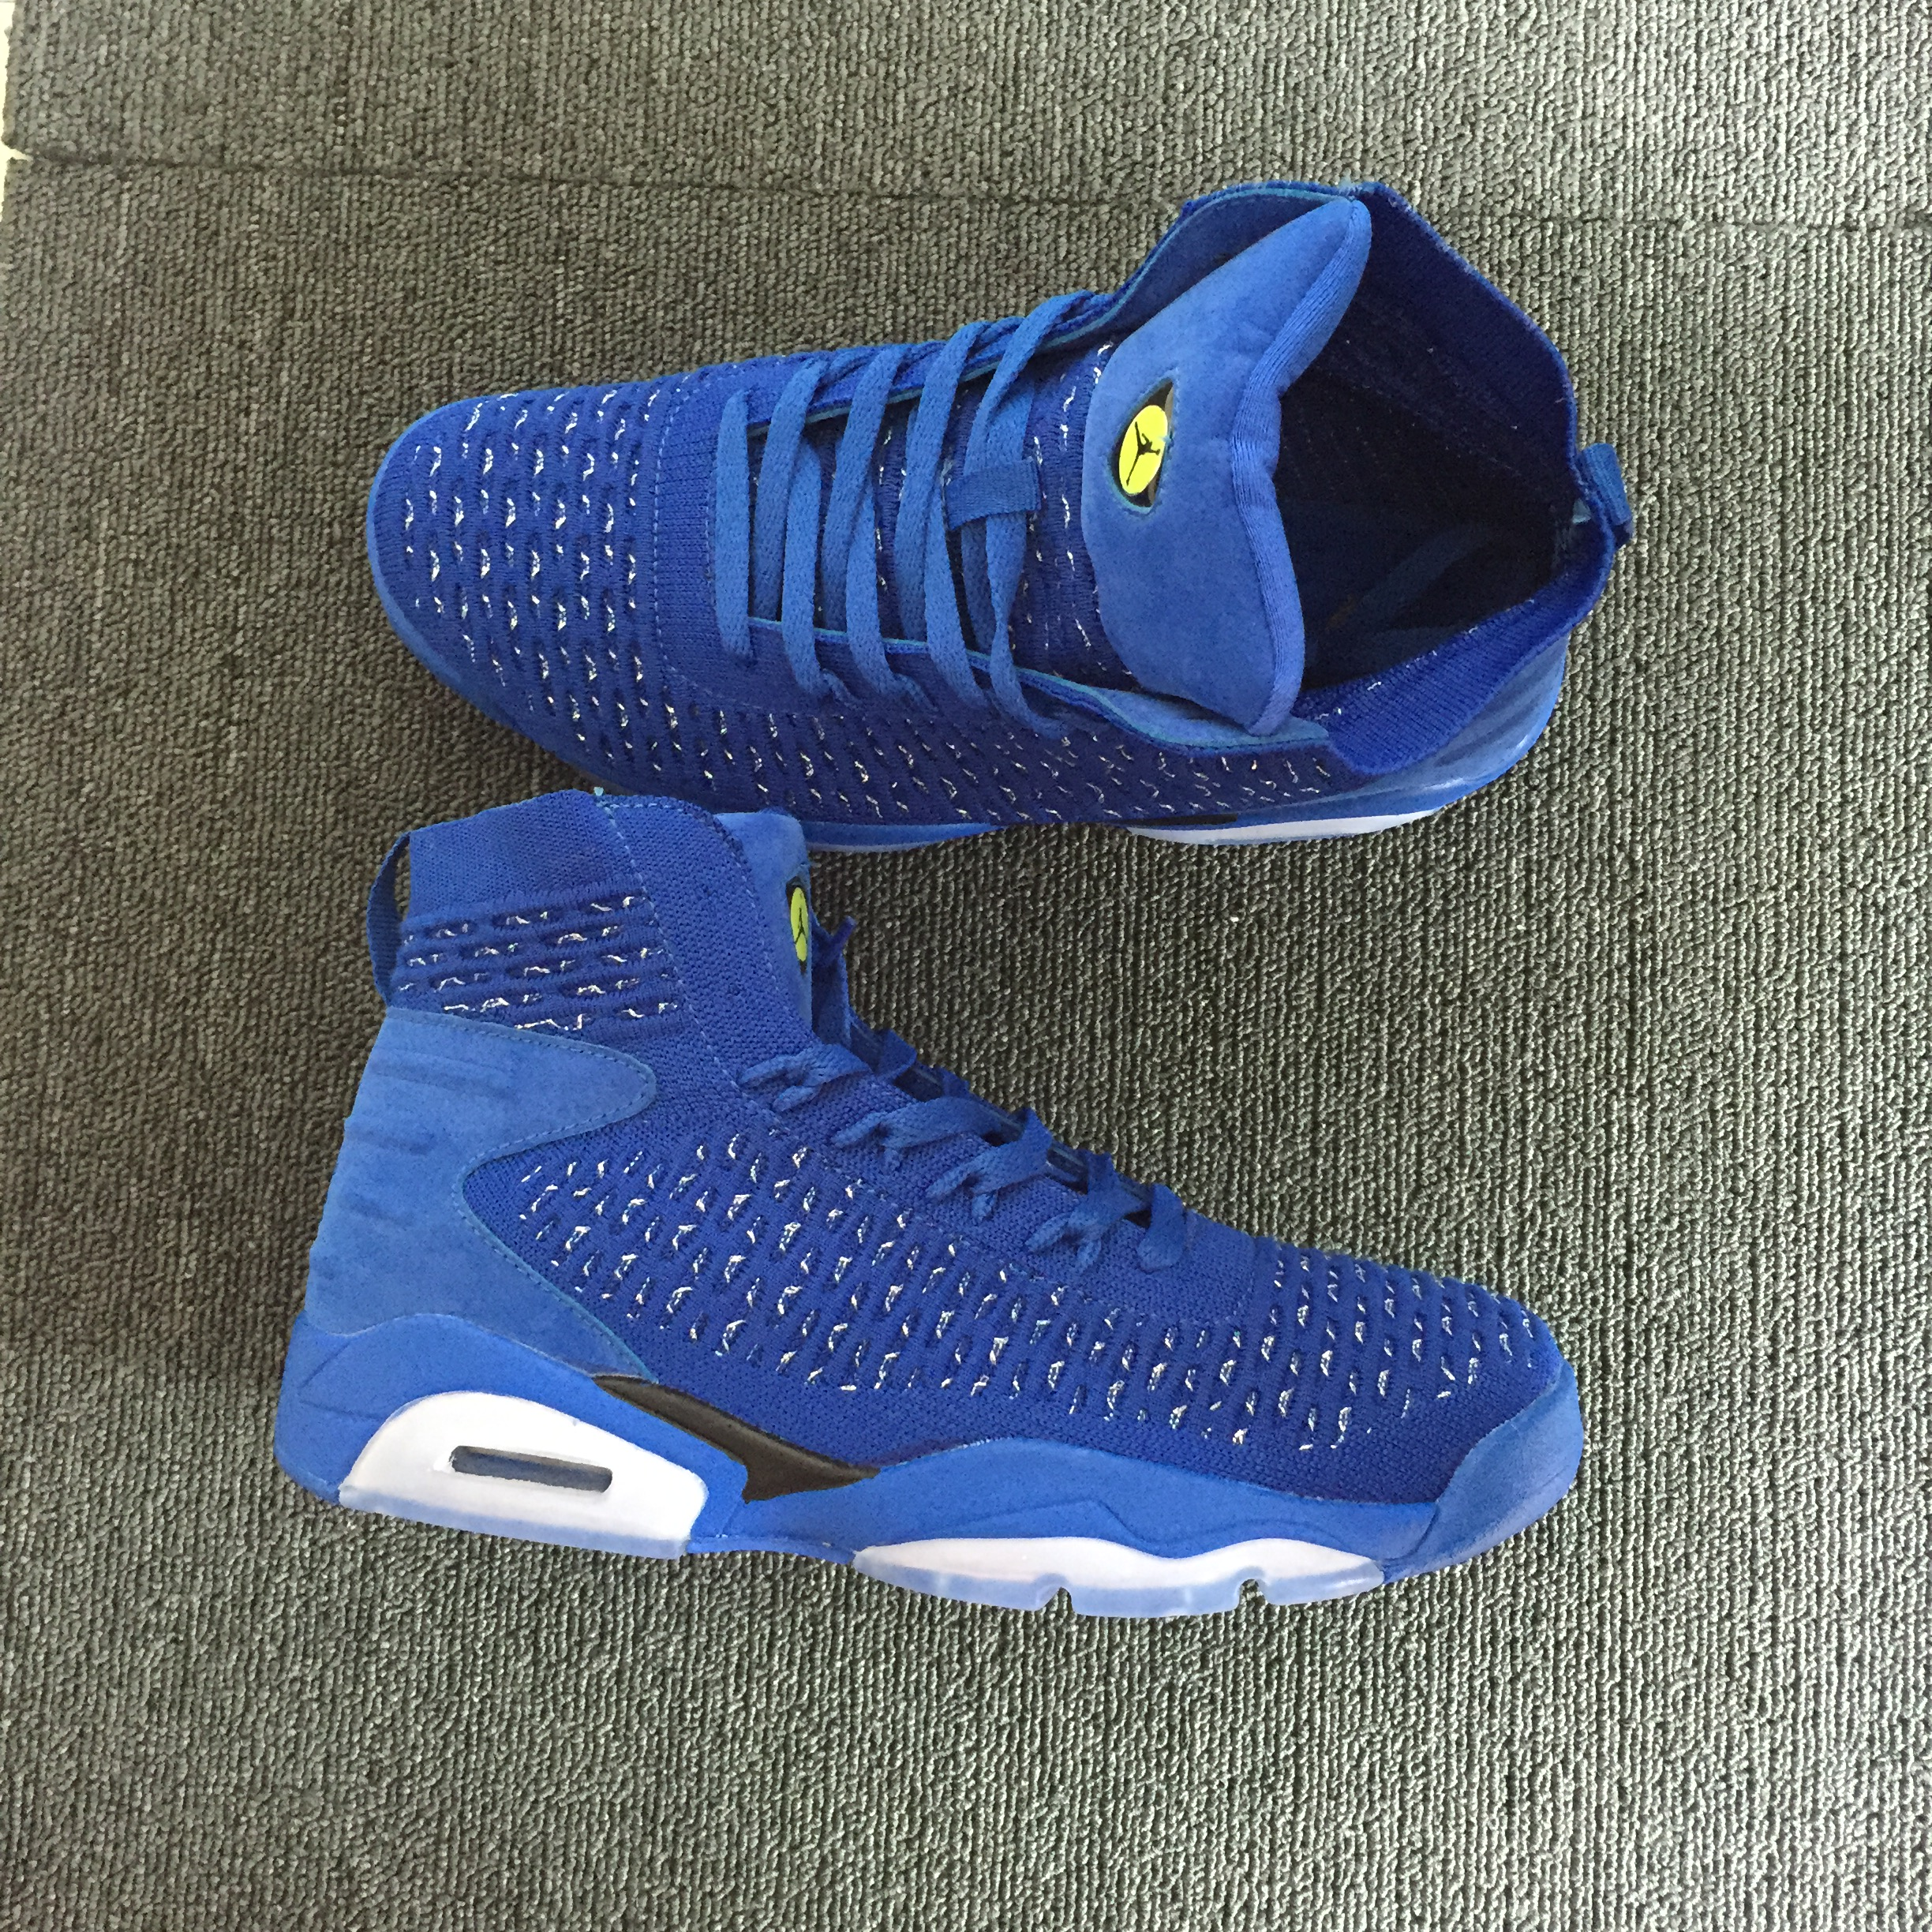 Men Jordan 6 Flyknit China Blue Shoes